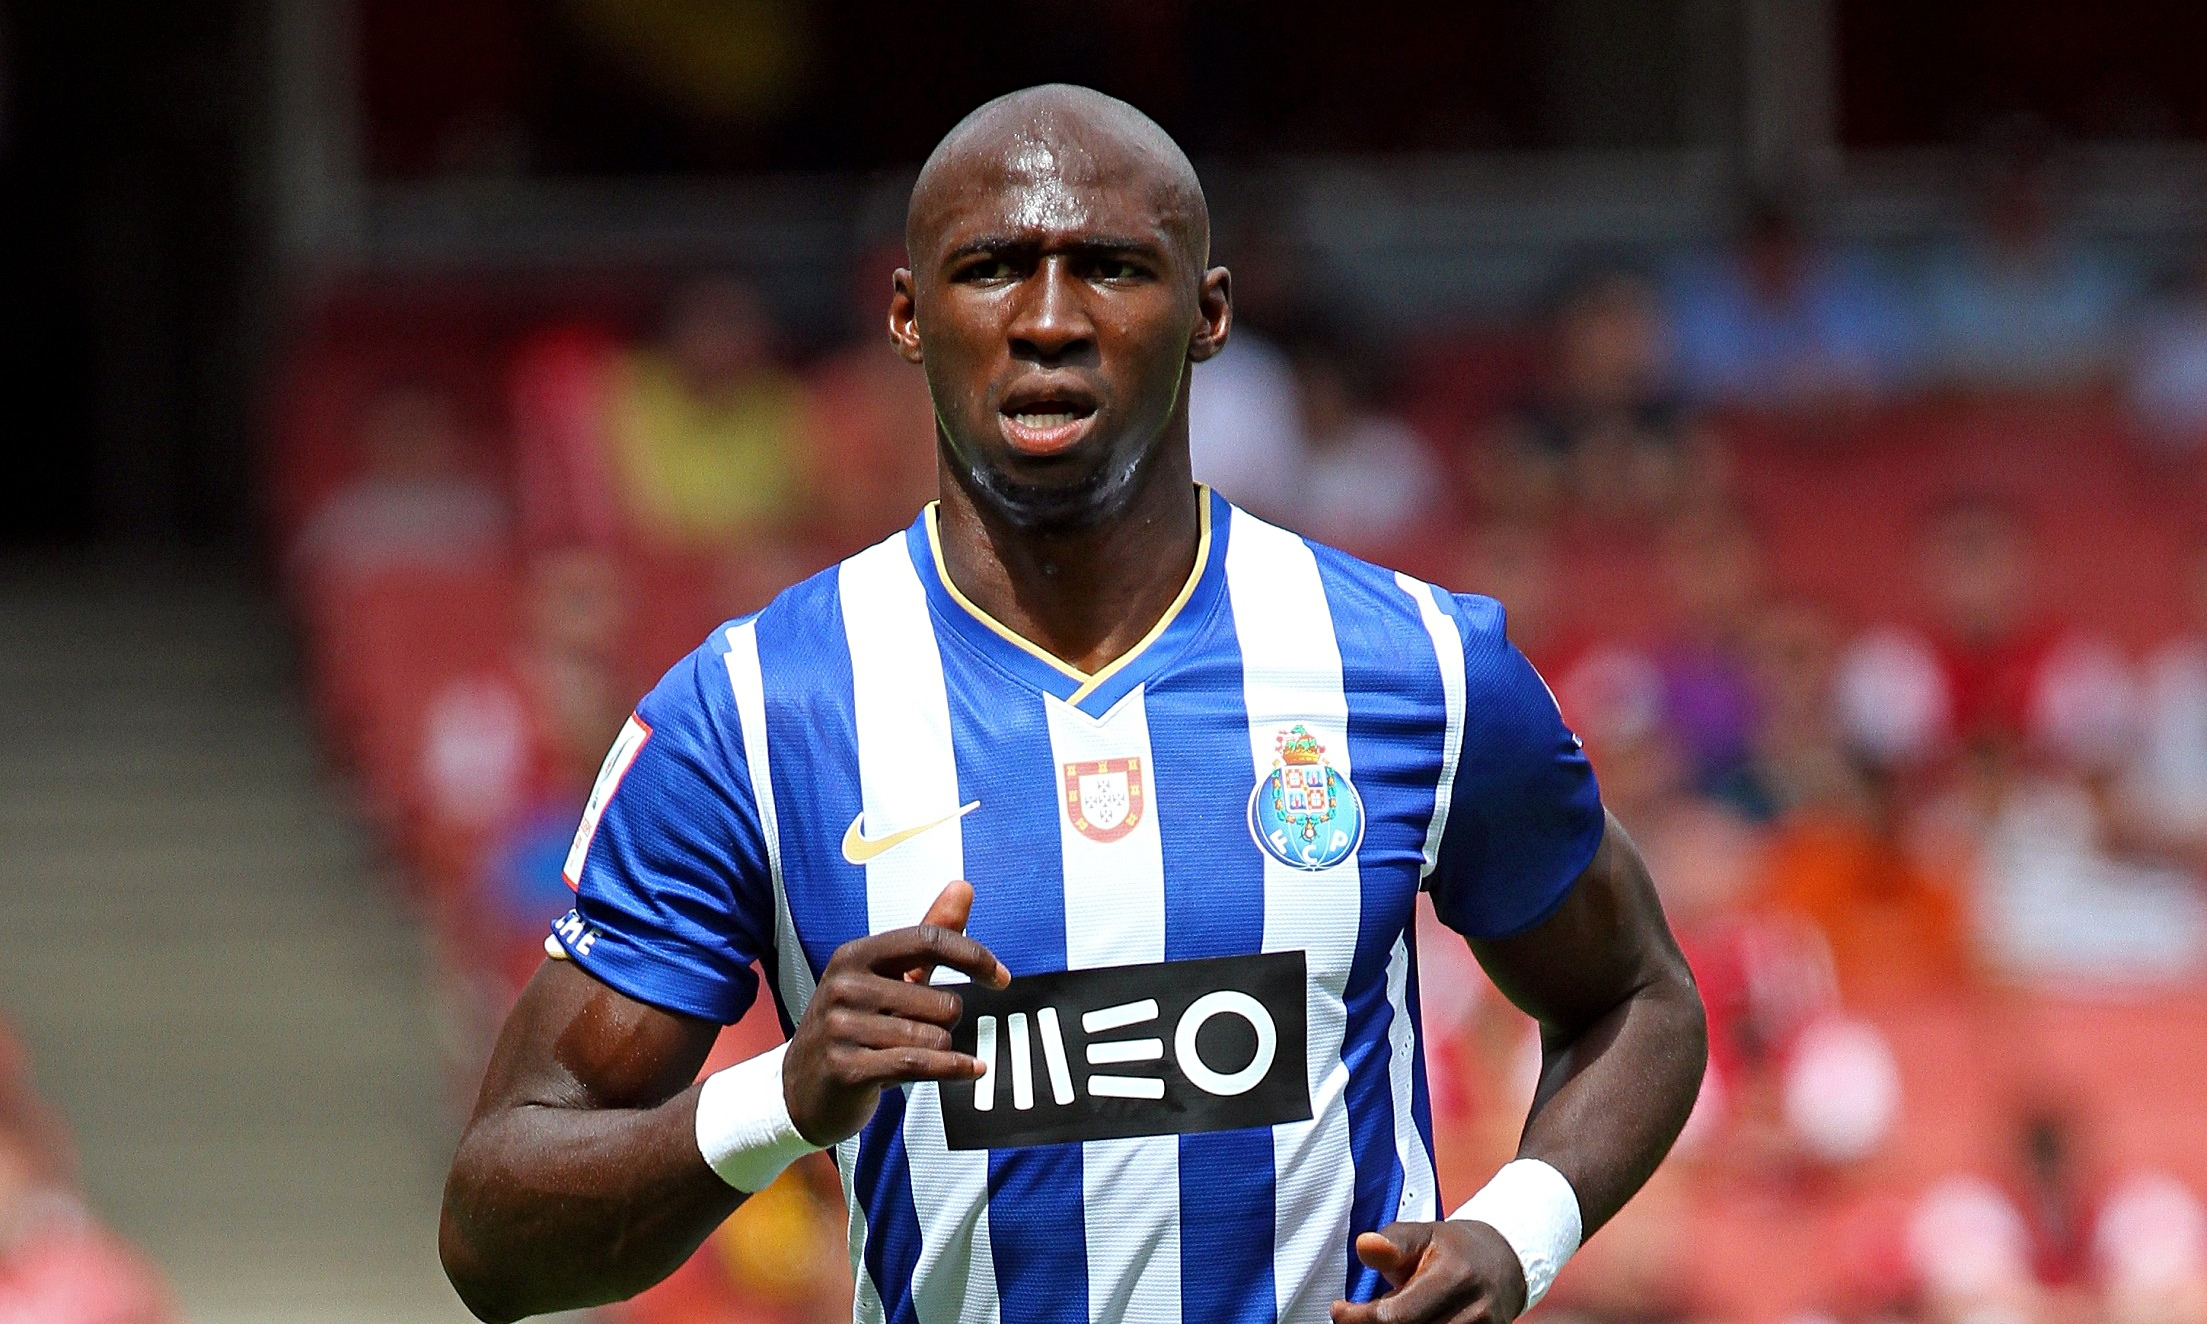 Lyon Close to Signing Eliaquim Mangala and Bertrand Traore